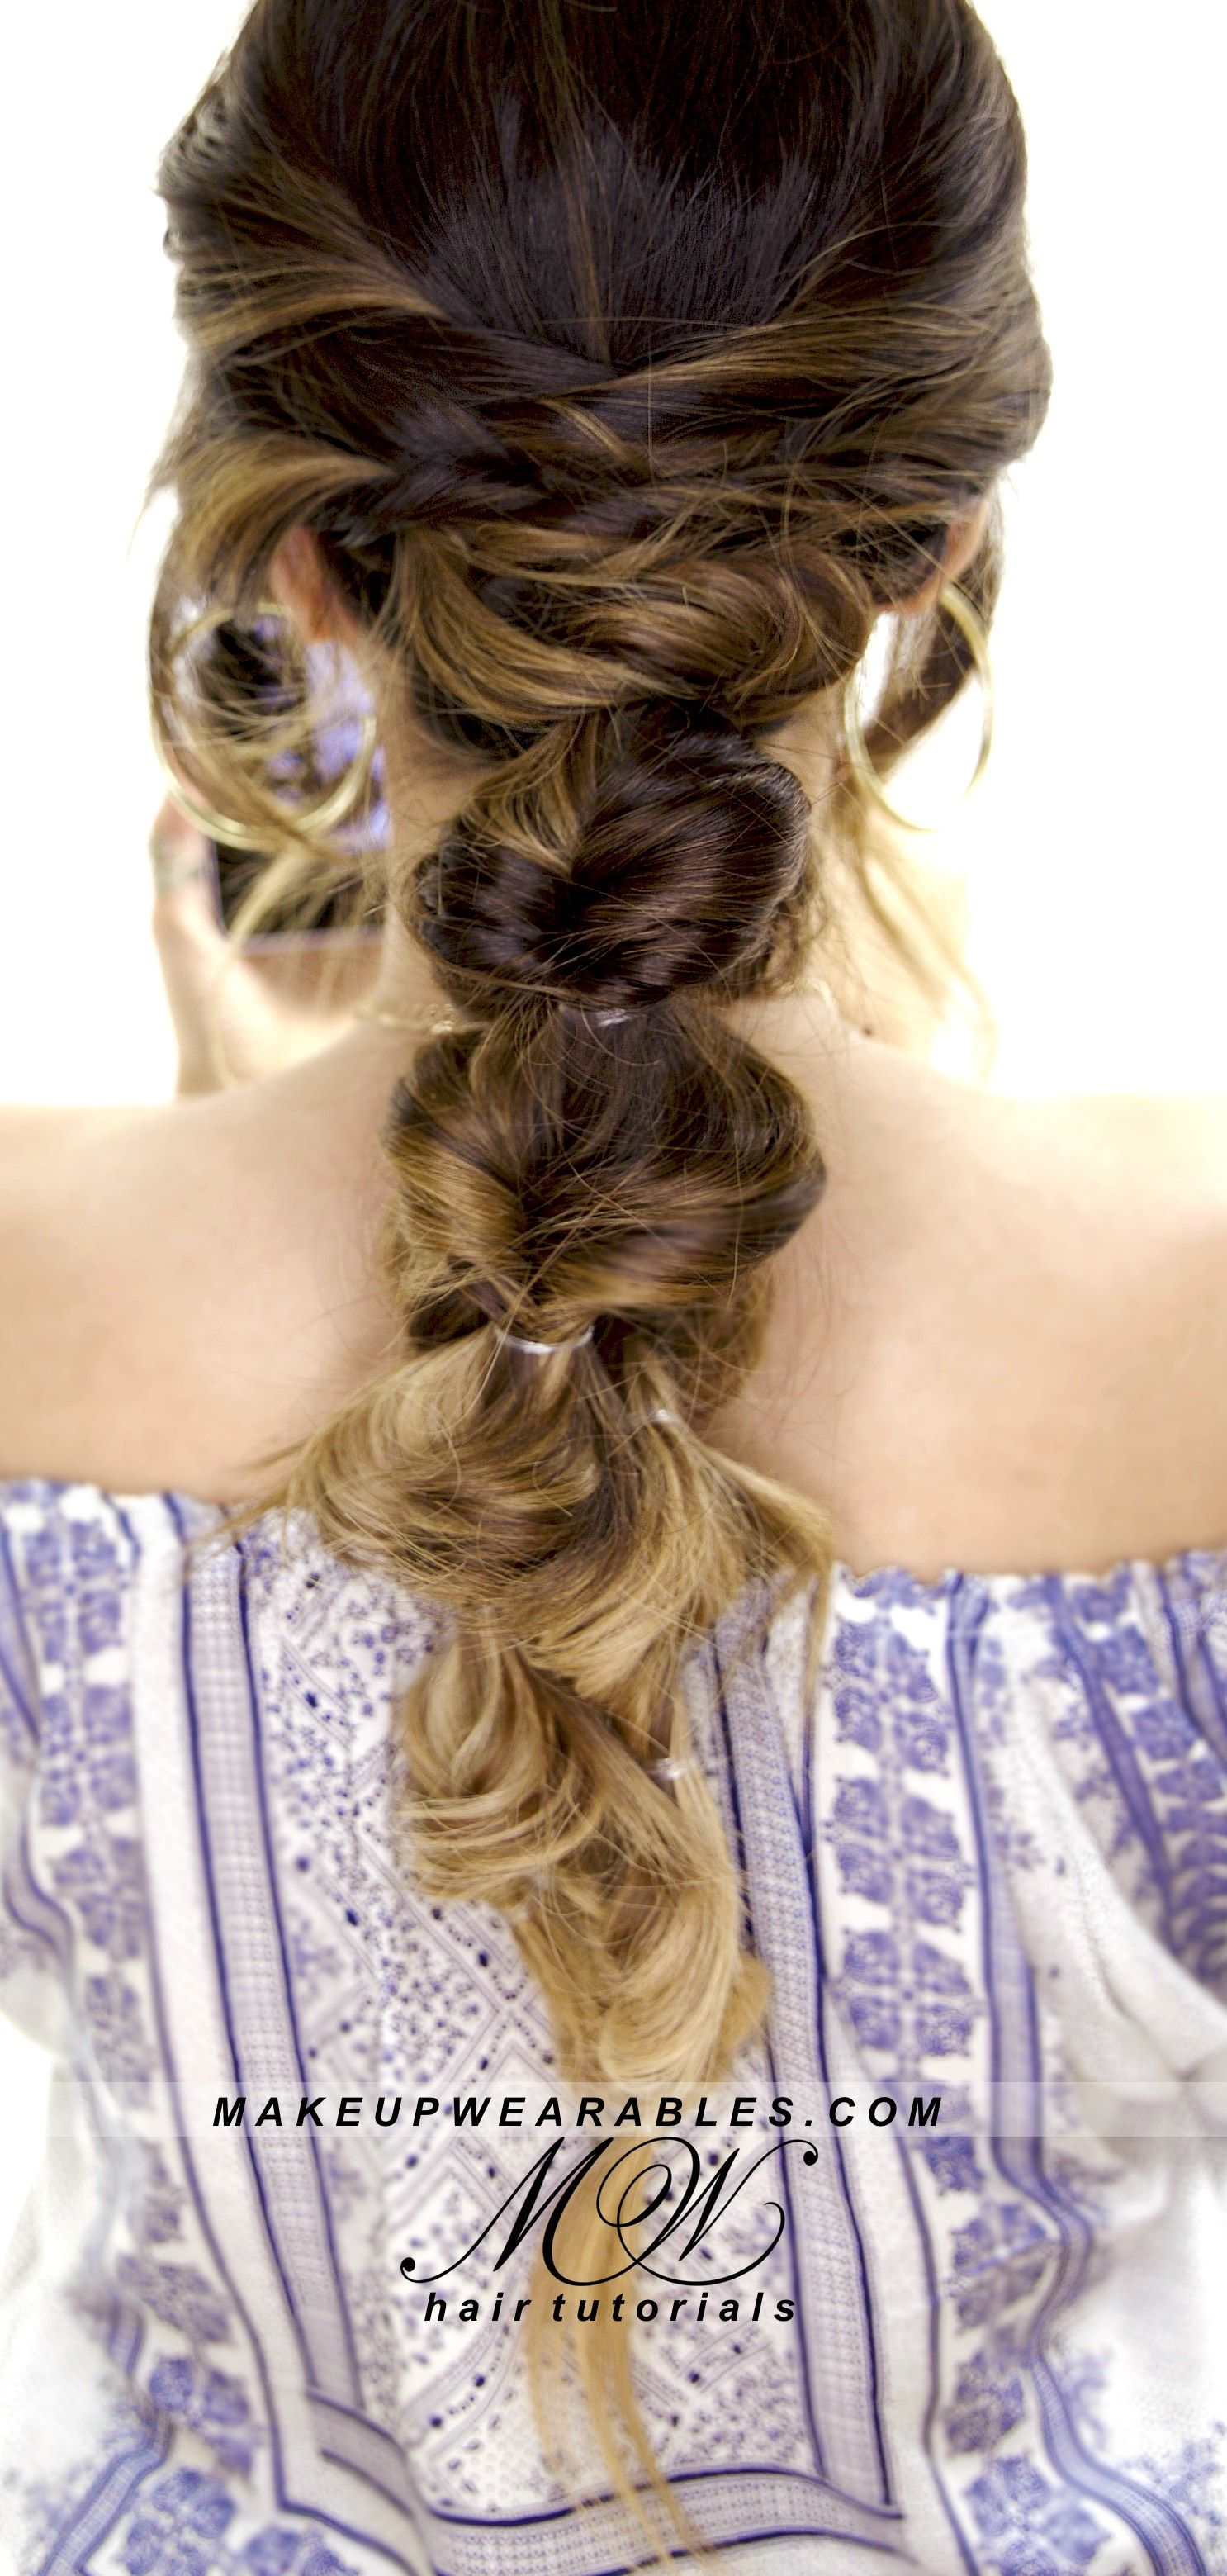 Everyday Hairstyles Best Hairstyle For Broad Forehead  Easy Everyday Hairstyles